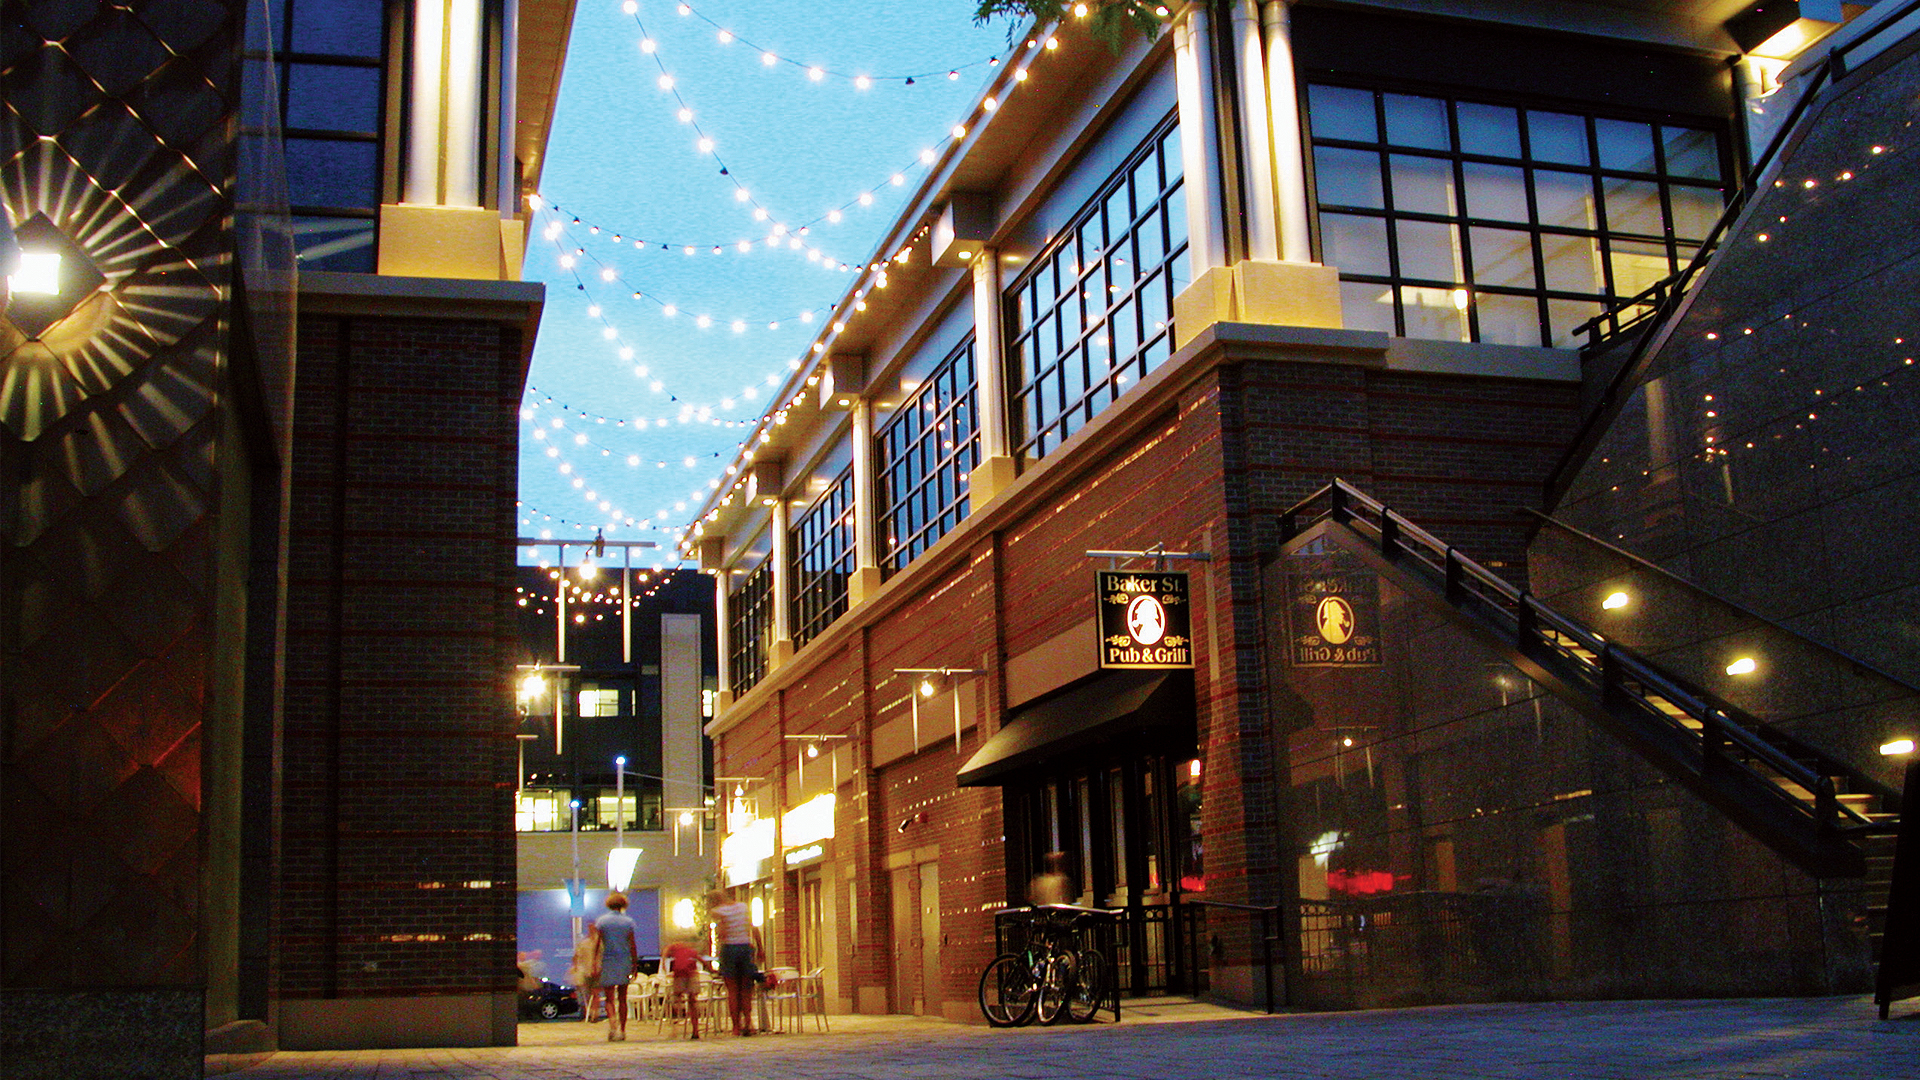 <p>Almost 3,500 residents call Belmar's 1,200 lofts, condos, townhomes, single-family detached homes, senior-oriented apartments and rental units home.</p>